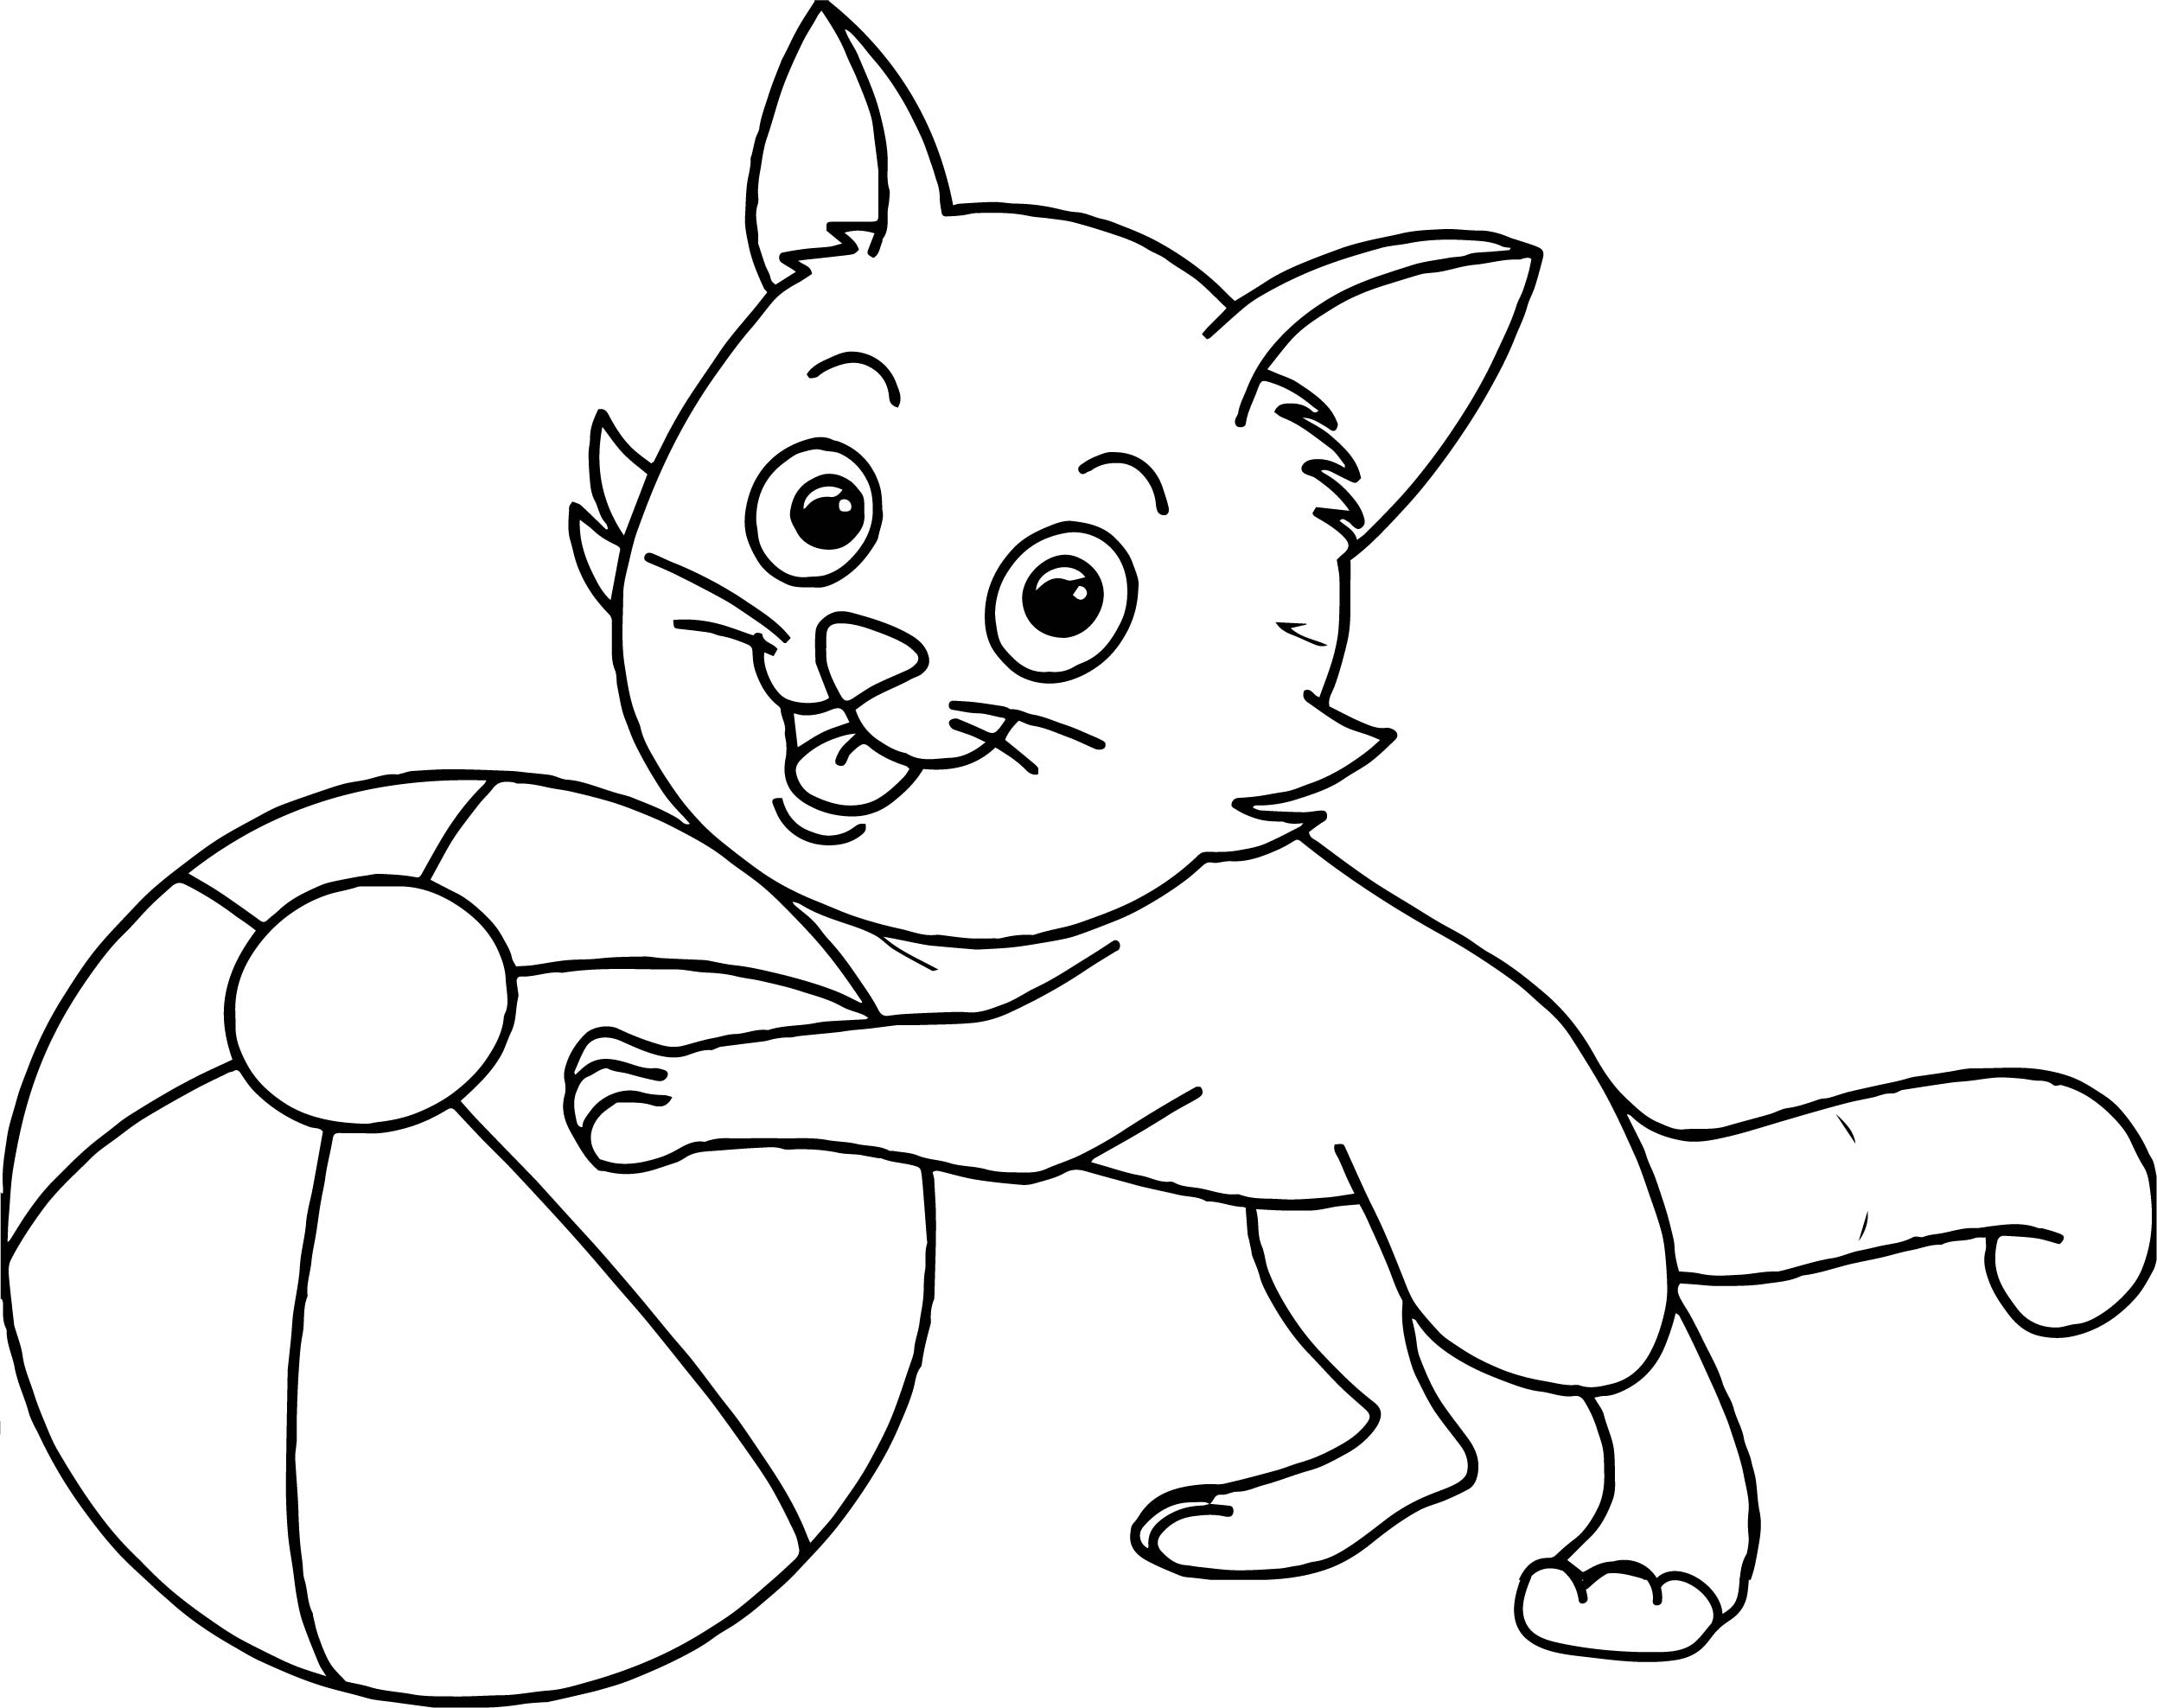 Cat Playing Ball Coloring Page